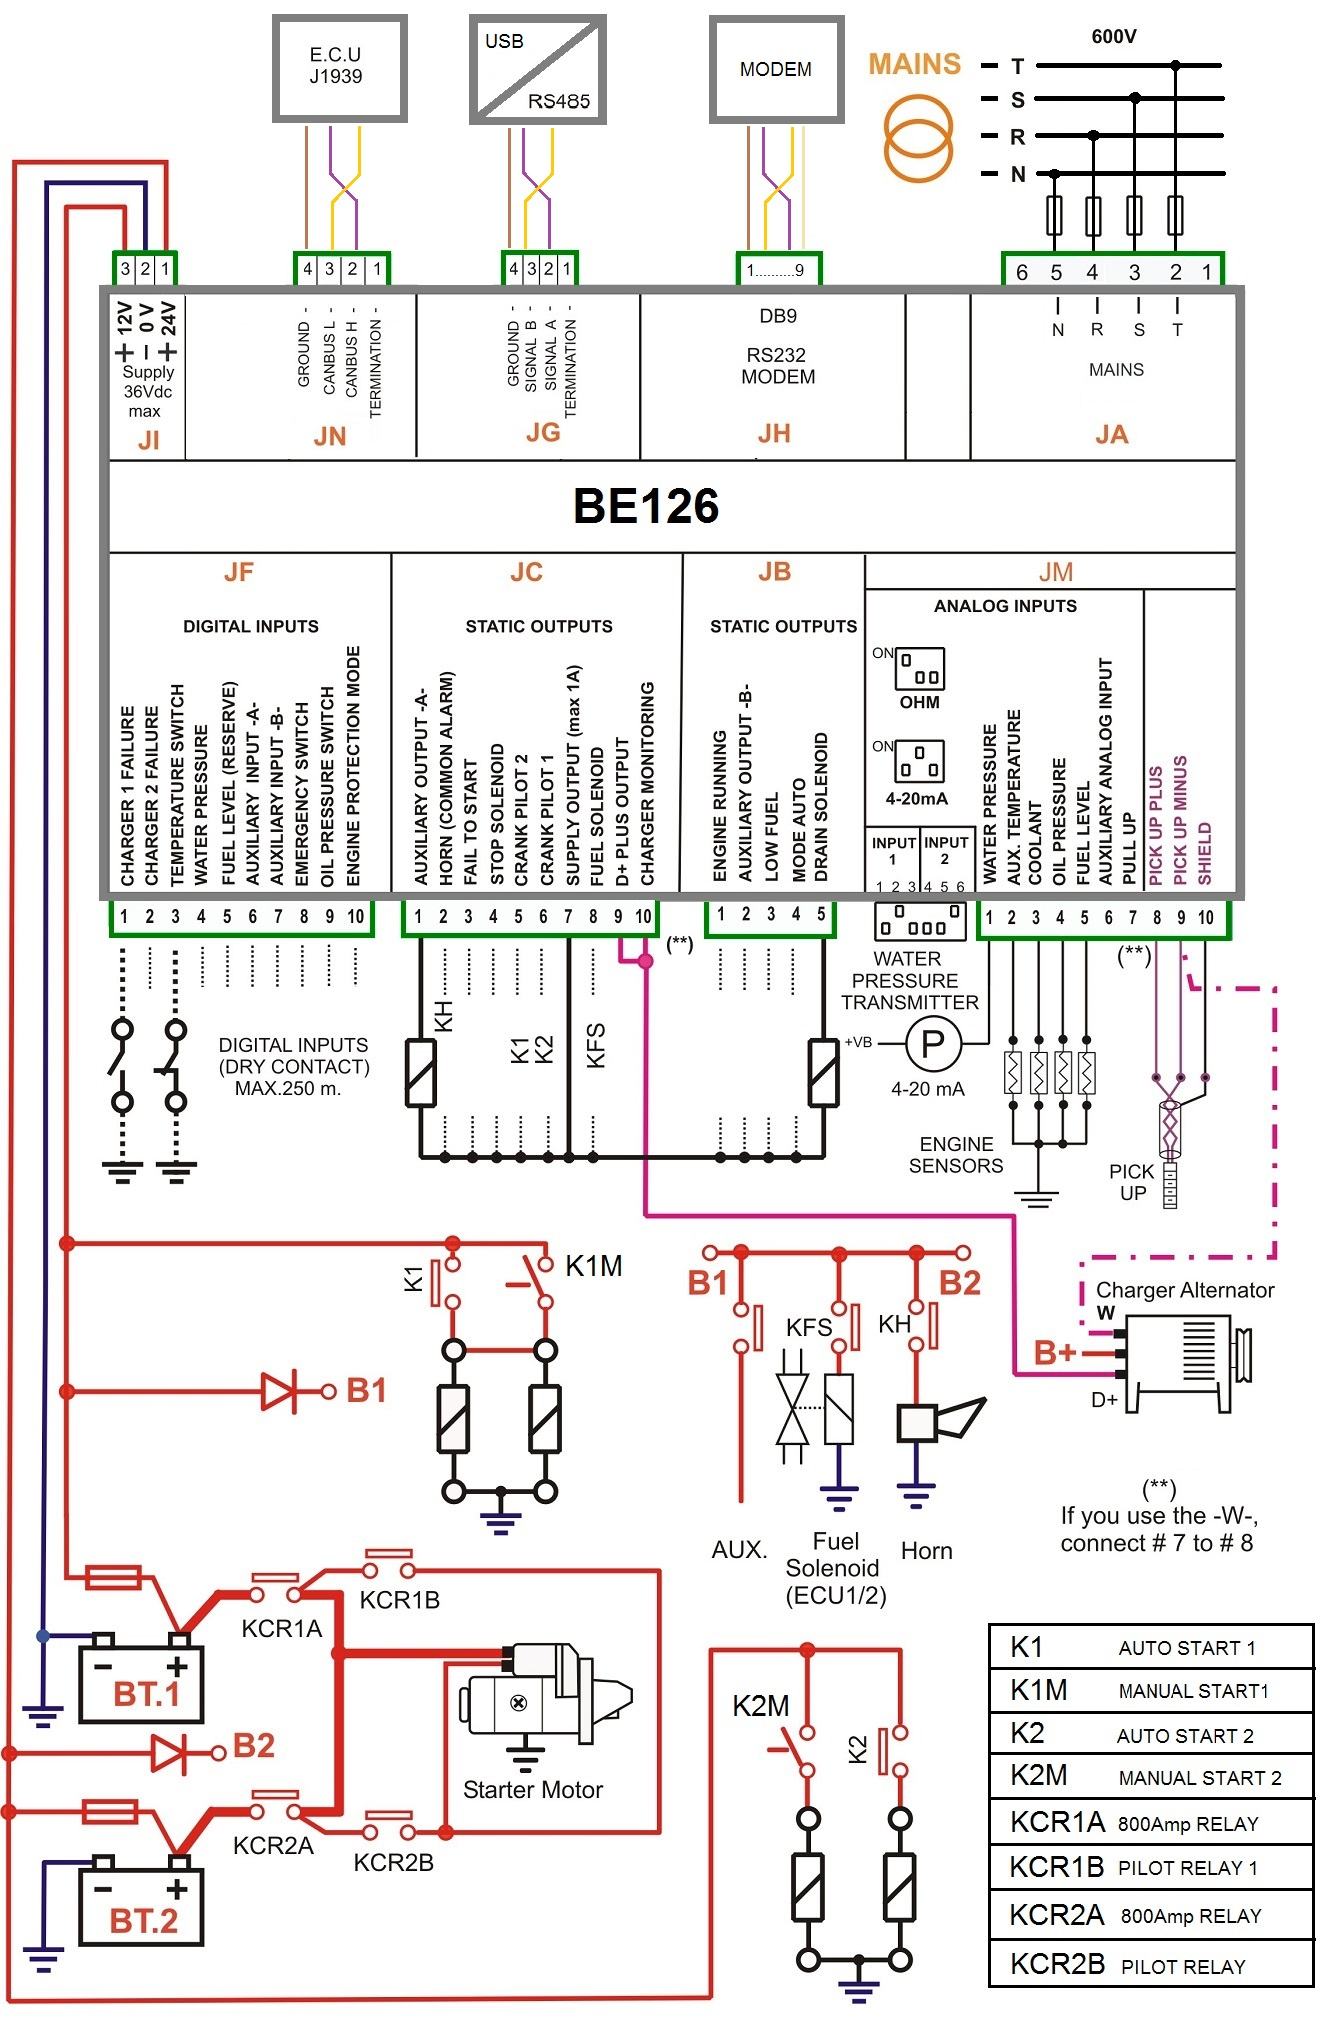 NFPA20 fire pump controller wiring diagram fire pump controller wiring diagram genset controller fire alarm control panel wiring diagram at bayanpartner.co